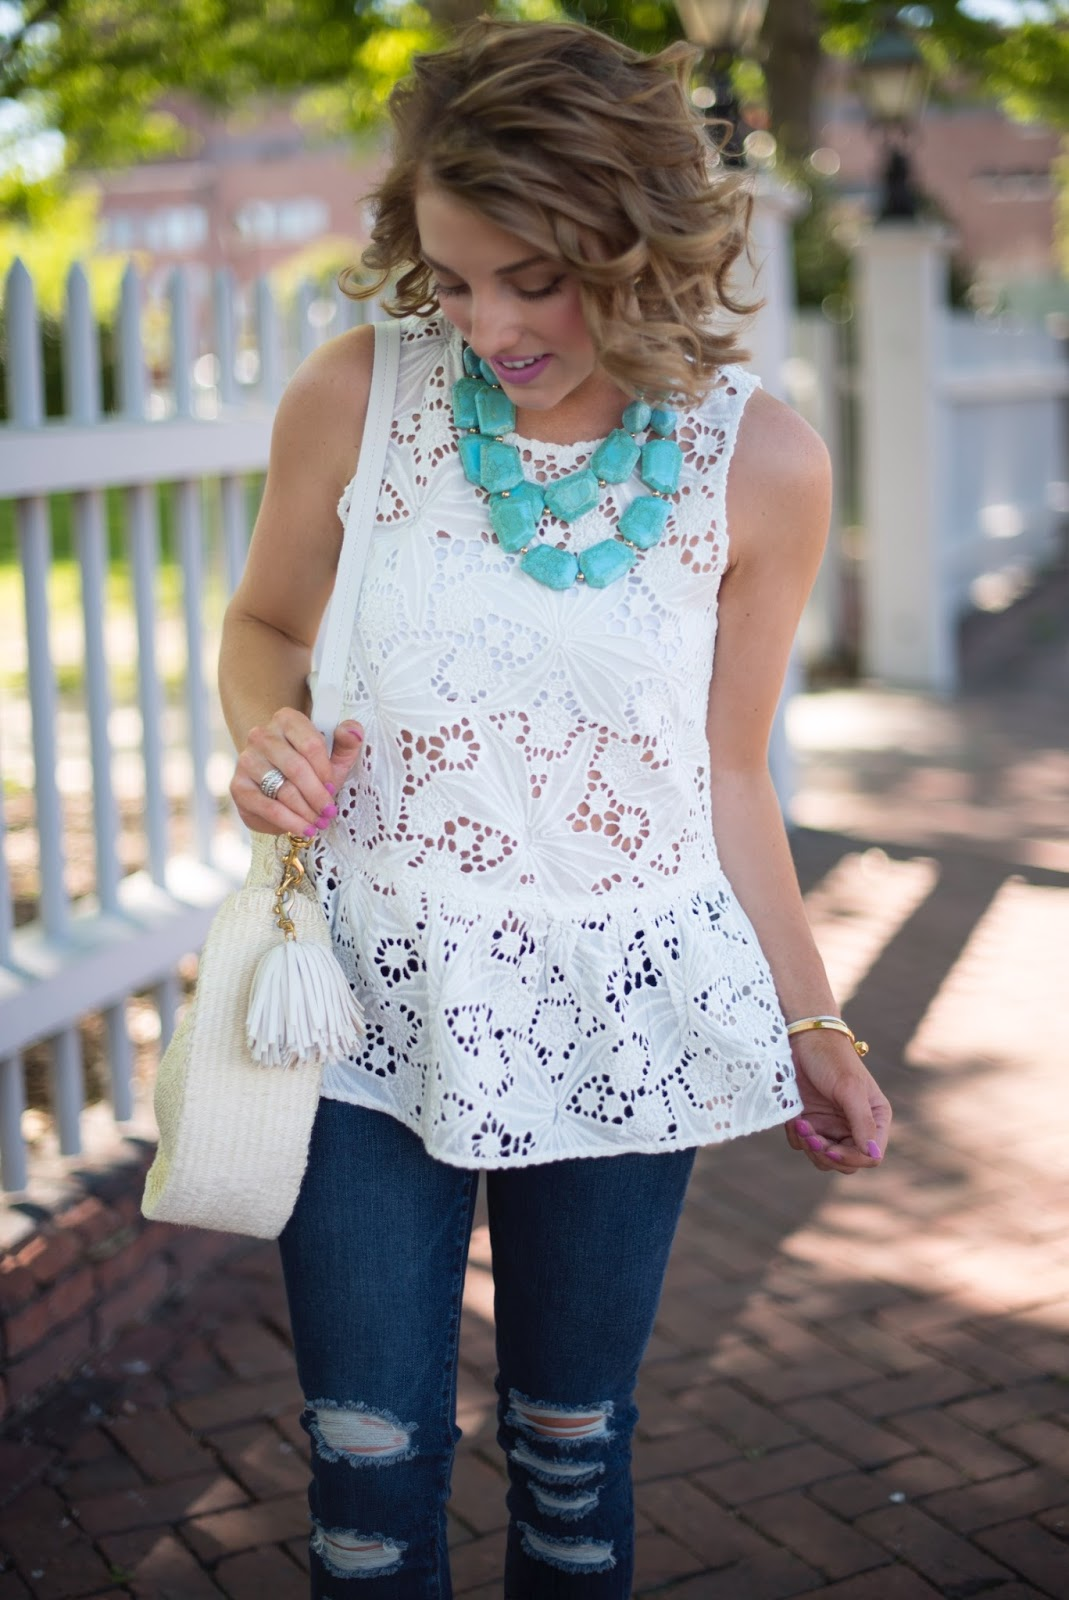 White lace + Turquoise - Click through to see more on Something Delightful Blog